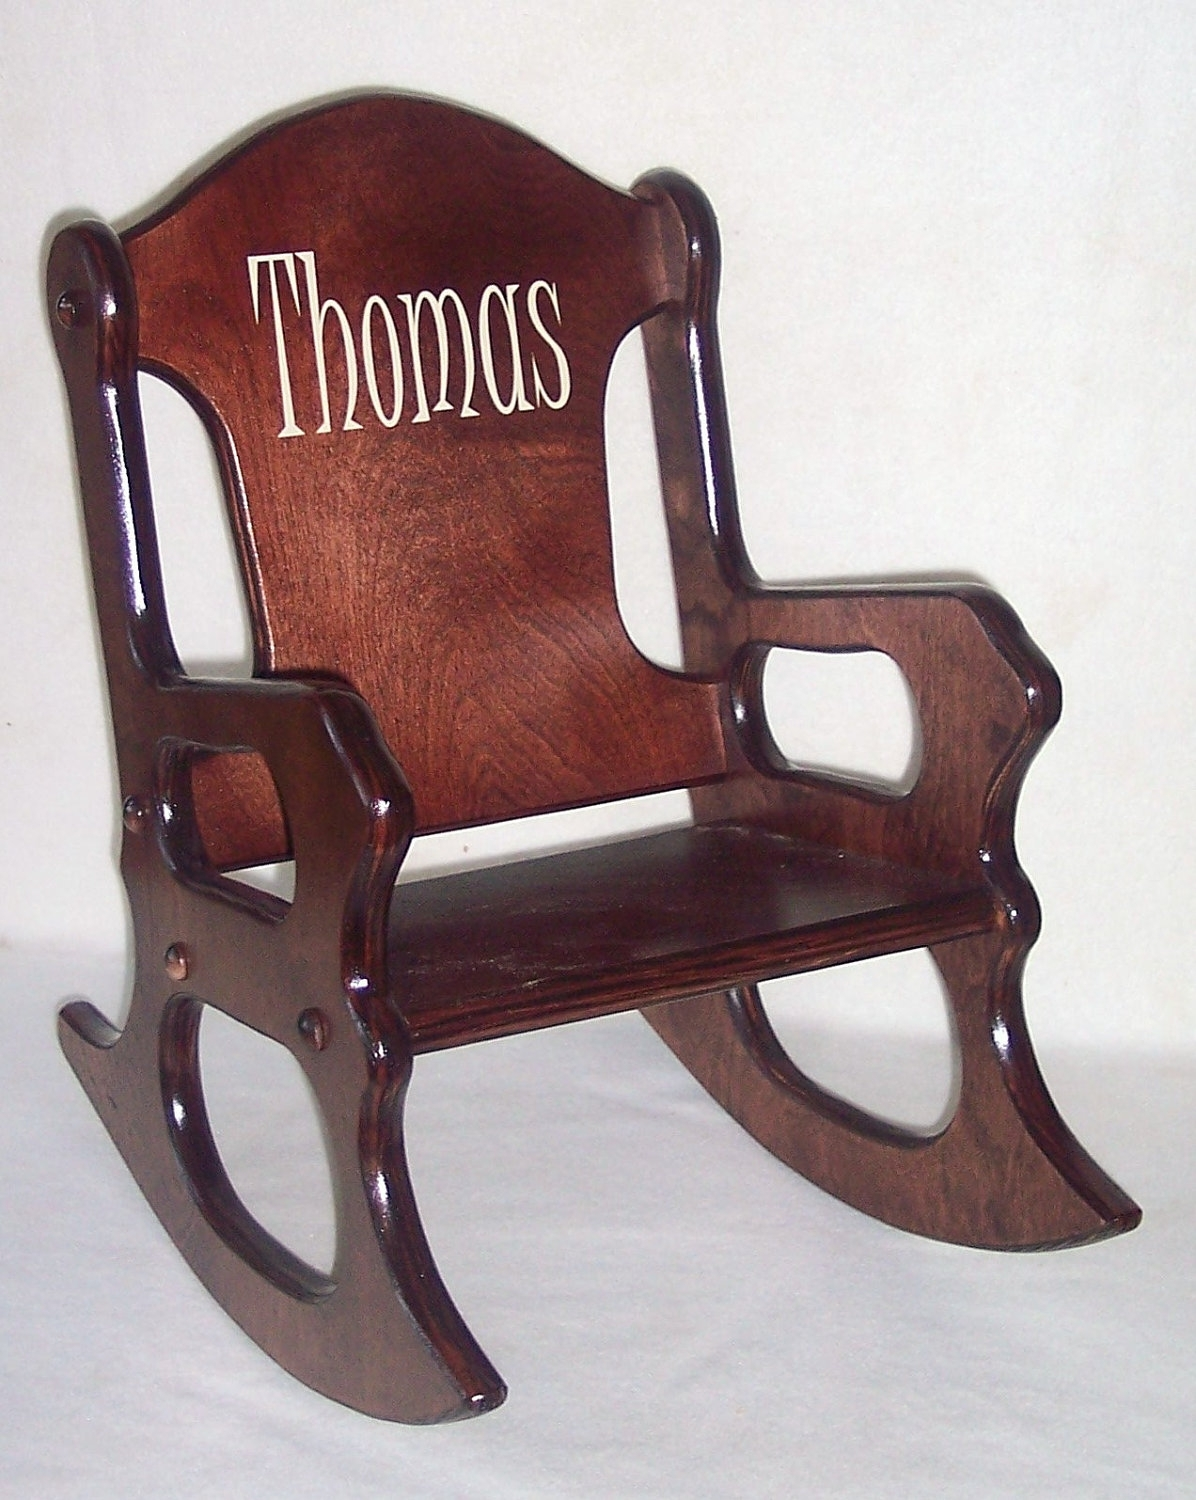 Wooden Kids Rocking Chair Personalized Cherry Finish, Kid Wood Chair Within Rocking Chairs For Toddlers (View 13 of 15)